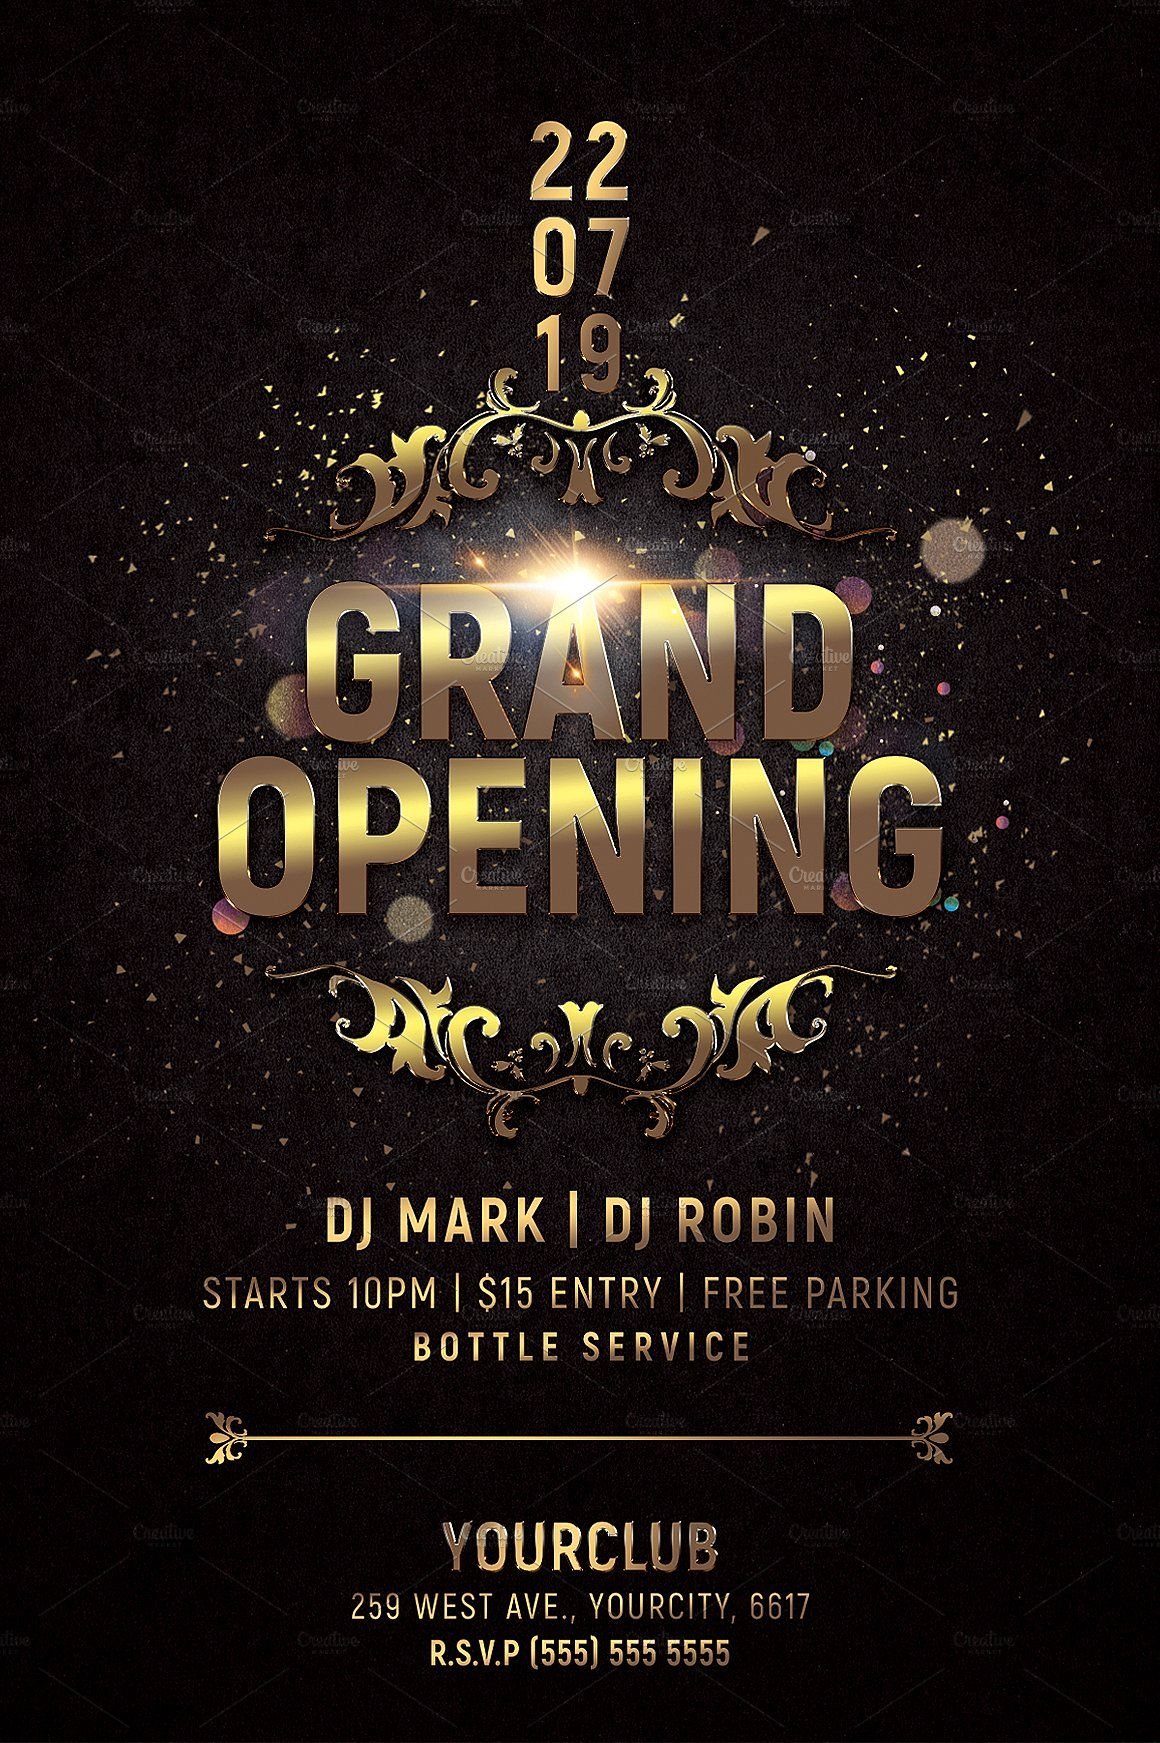 Grand Opening Party Flyer by Hotpin on creativemarket